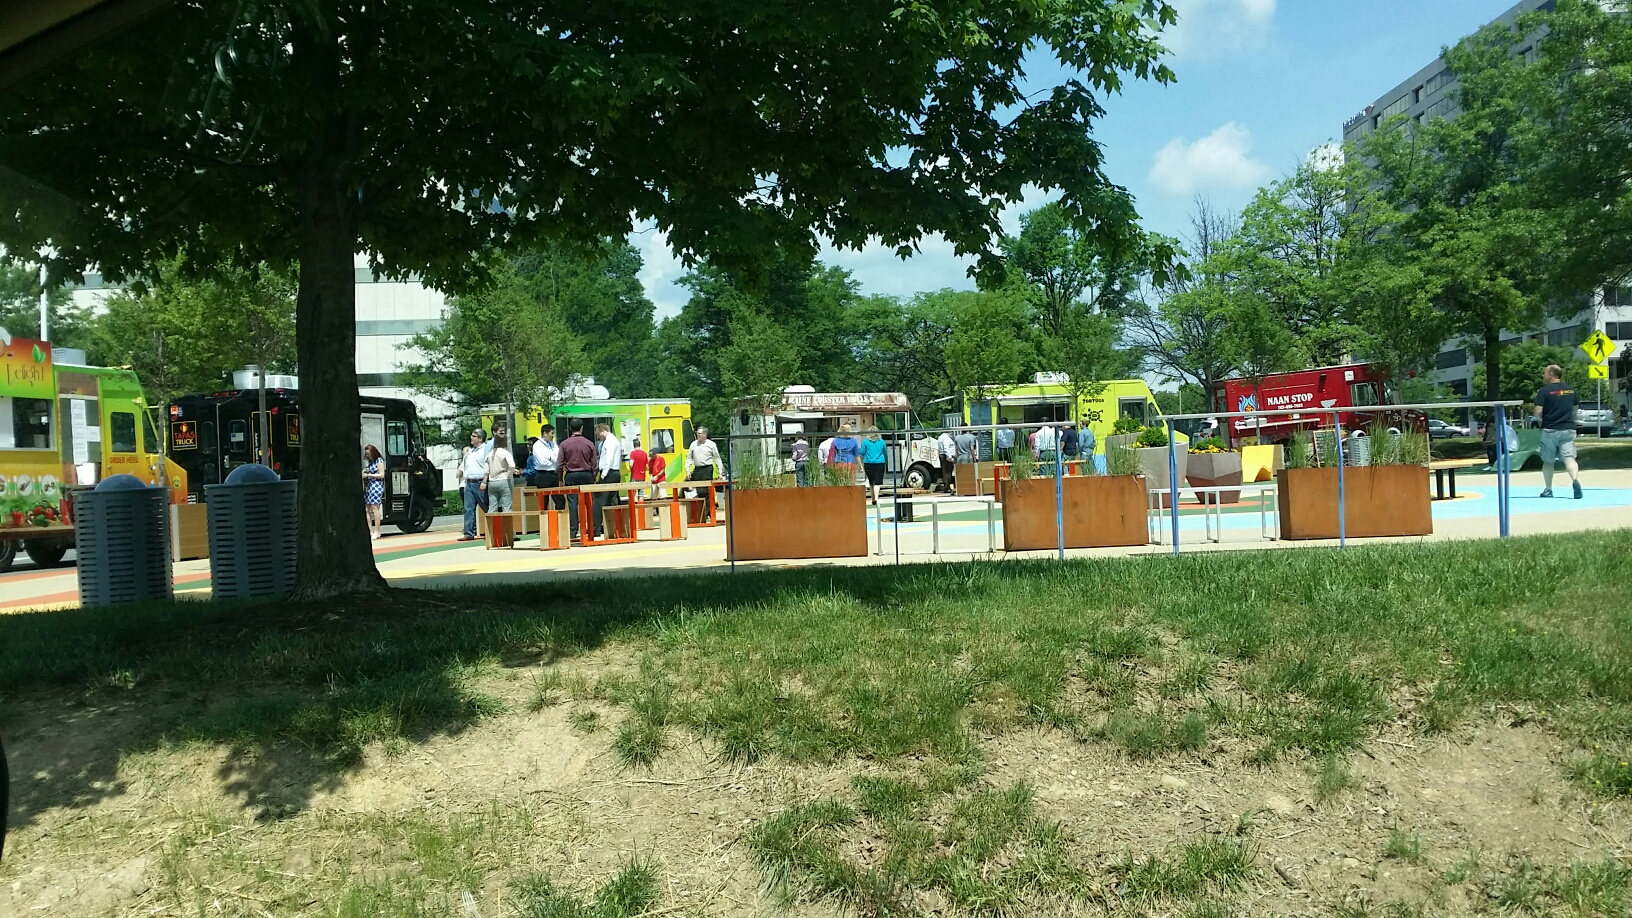 McLean, VA - Another great day for food trucks at Greensboro Station! Lobster roll anyone?